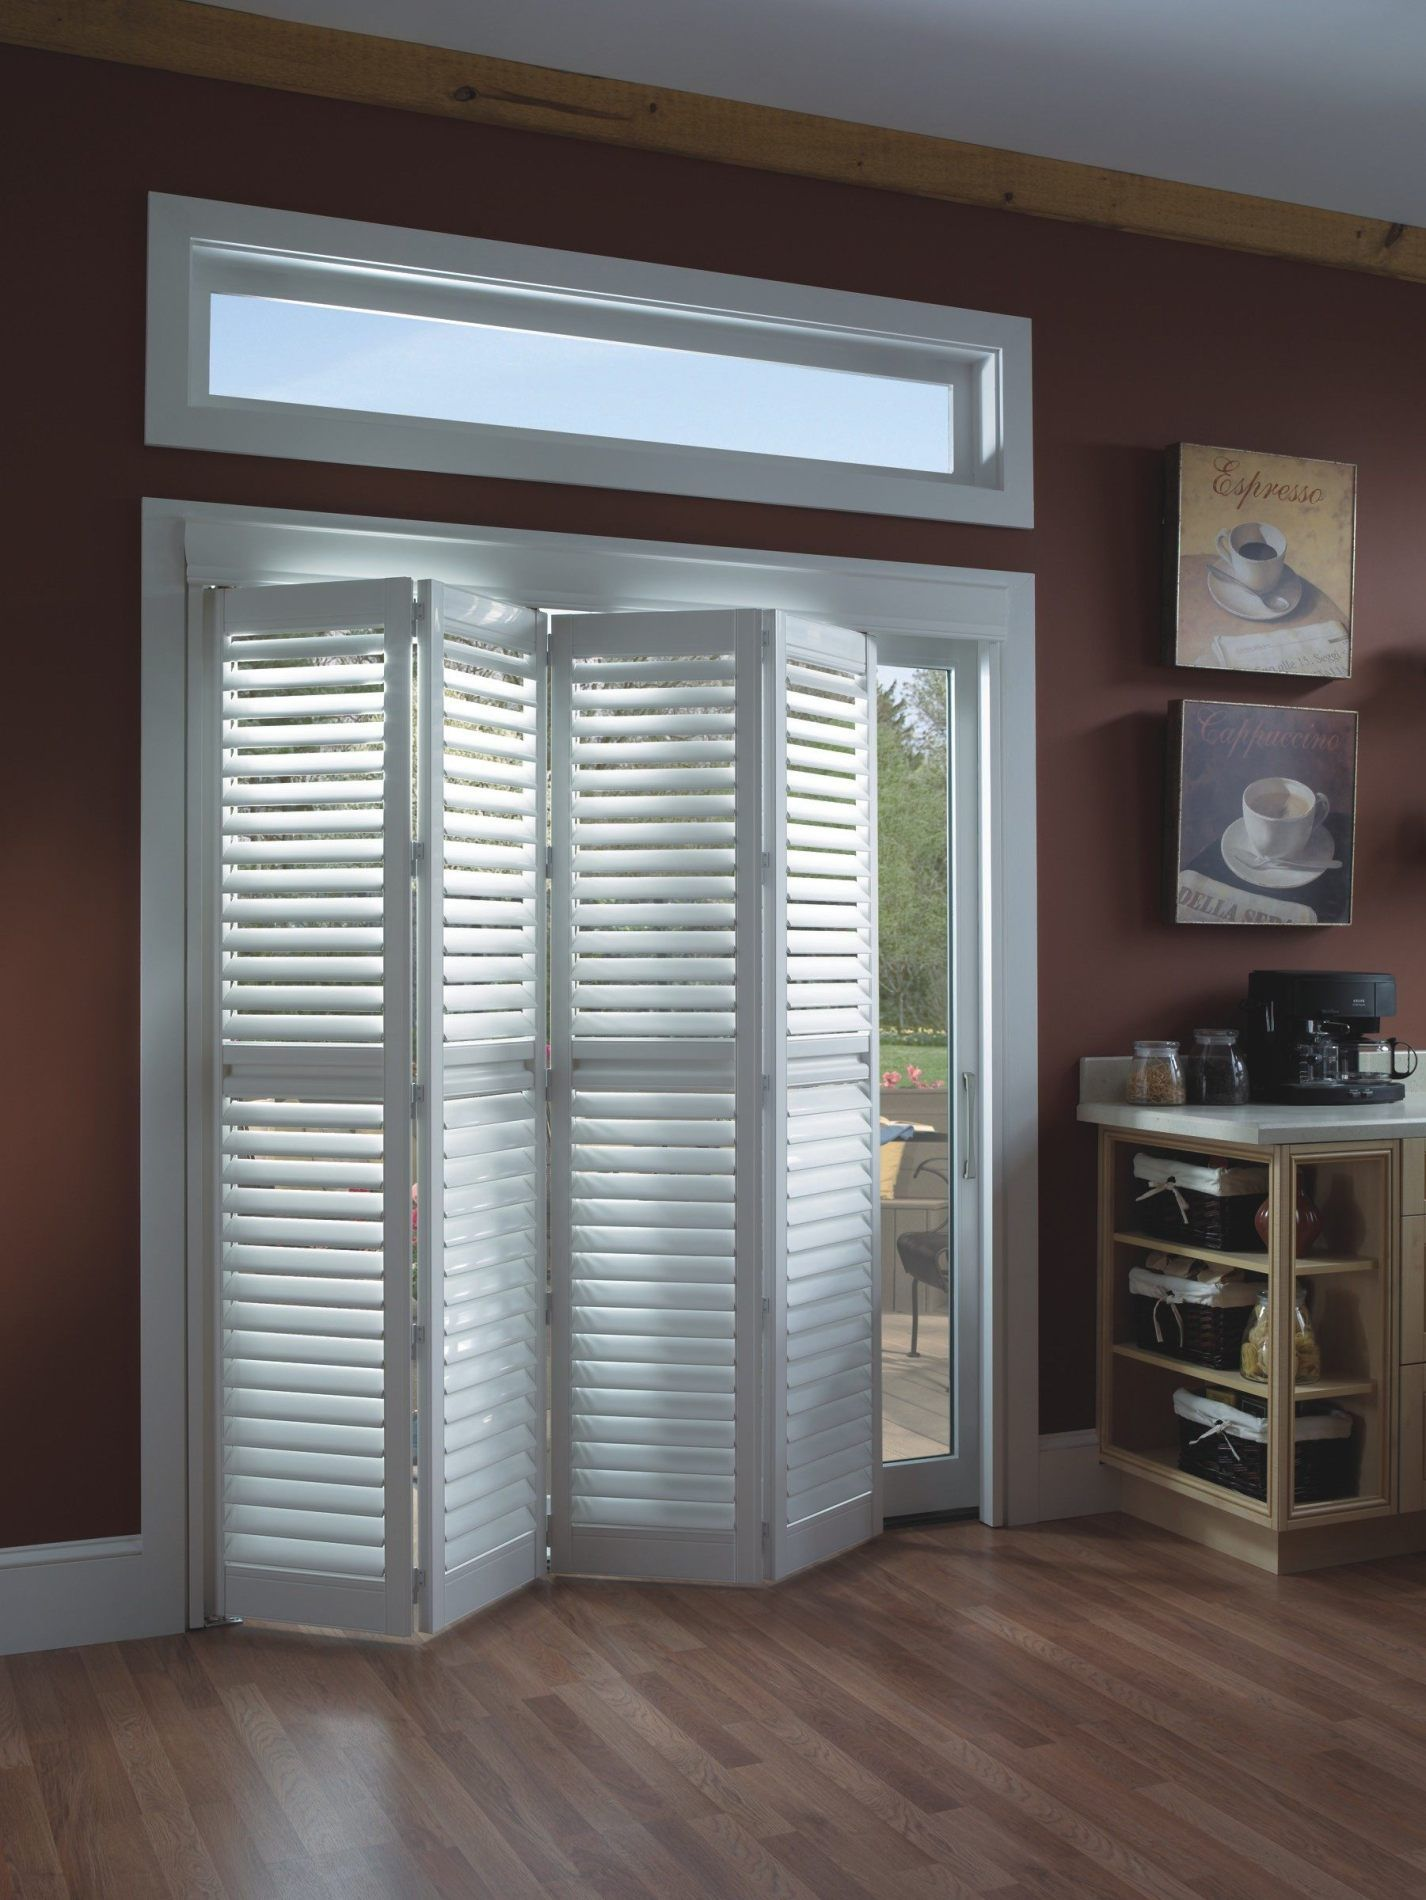 Window Faq Best Window Coverings For French Doors And Sliding Glass Windows Blinds Com Sliding Glass Door Window Door Coverings Glass Door Coverings